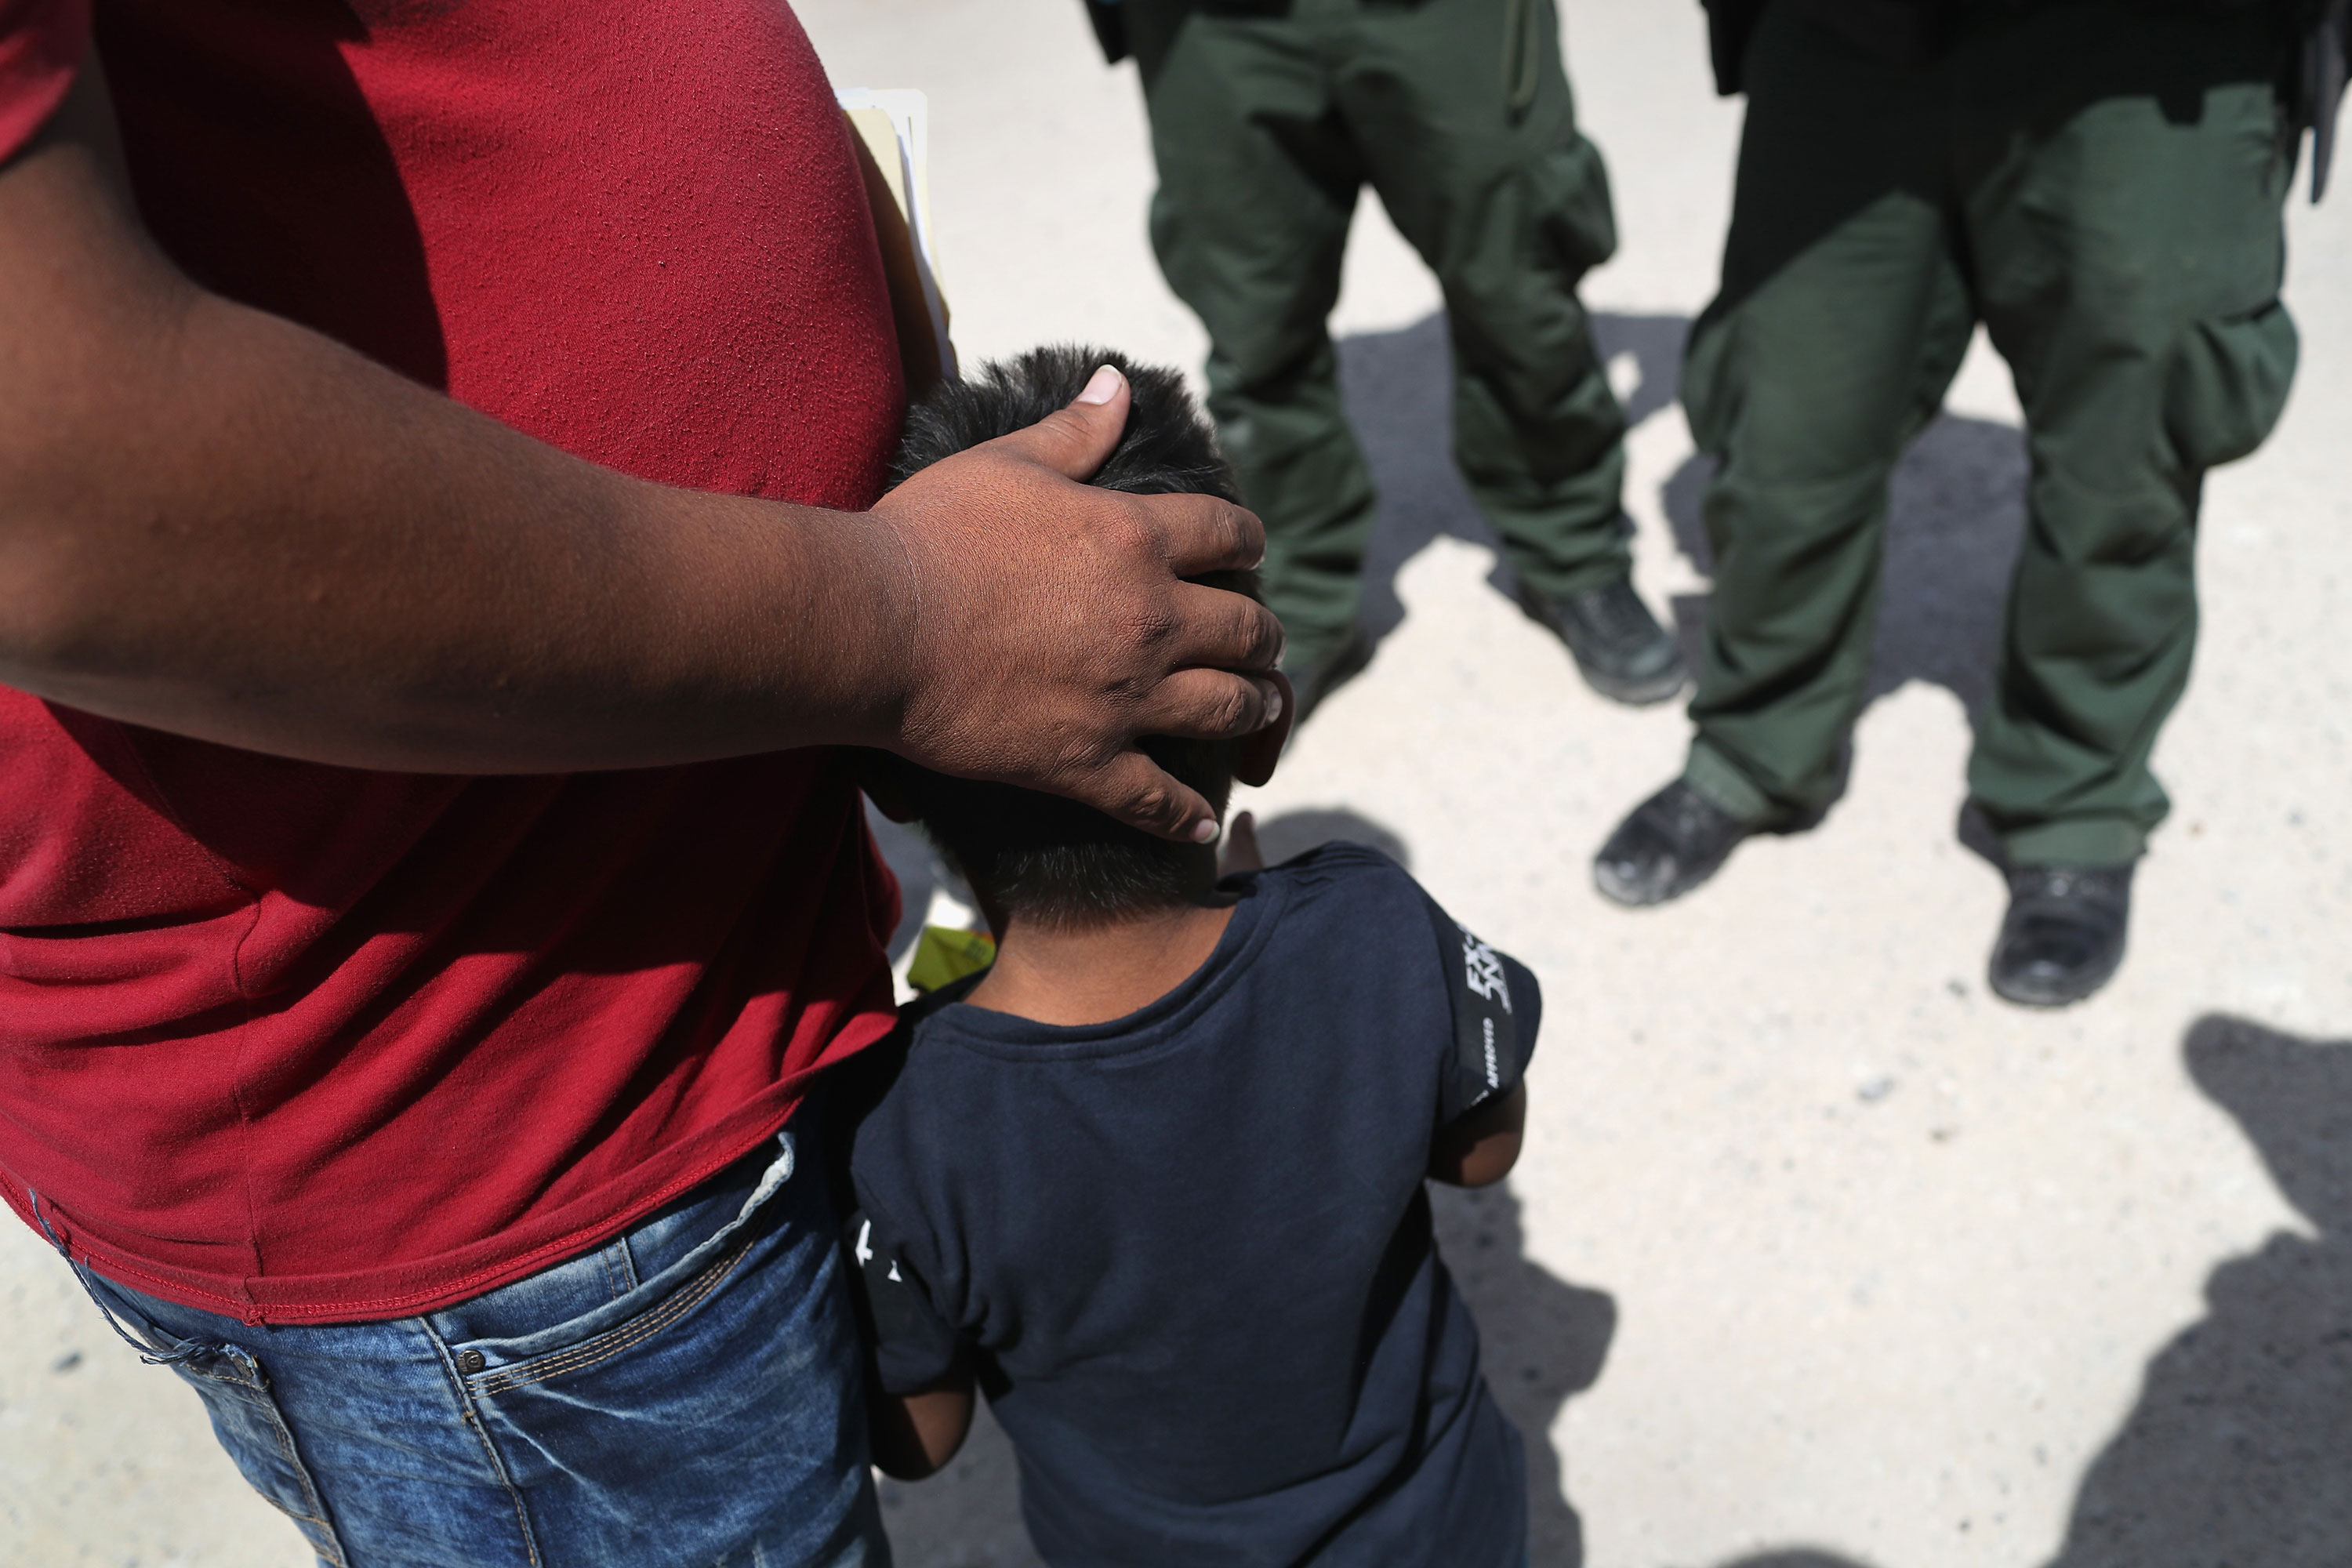 Parents of 628 migrant children separated at border still have not been found, court filing says